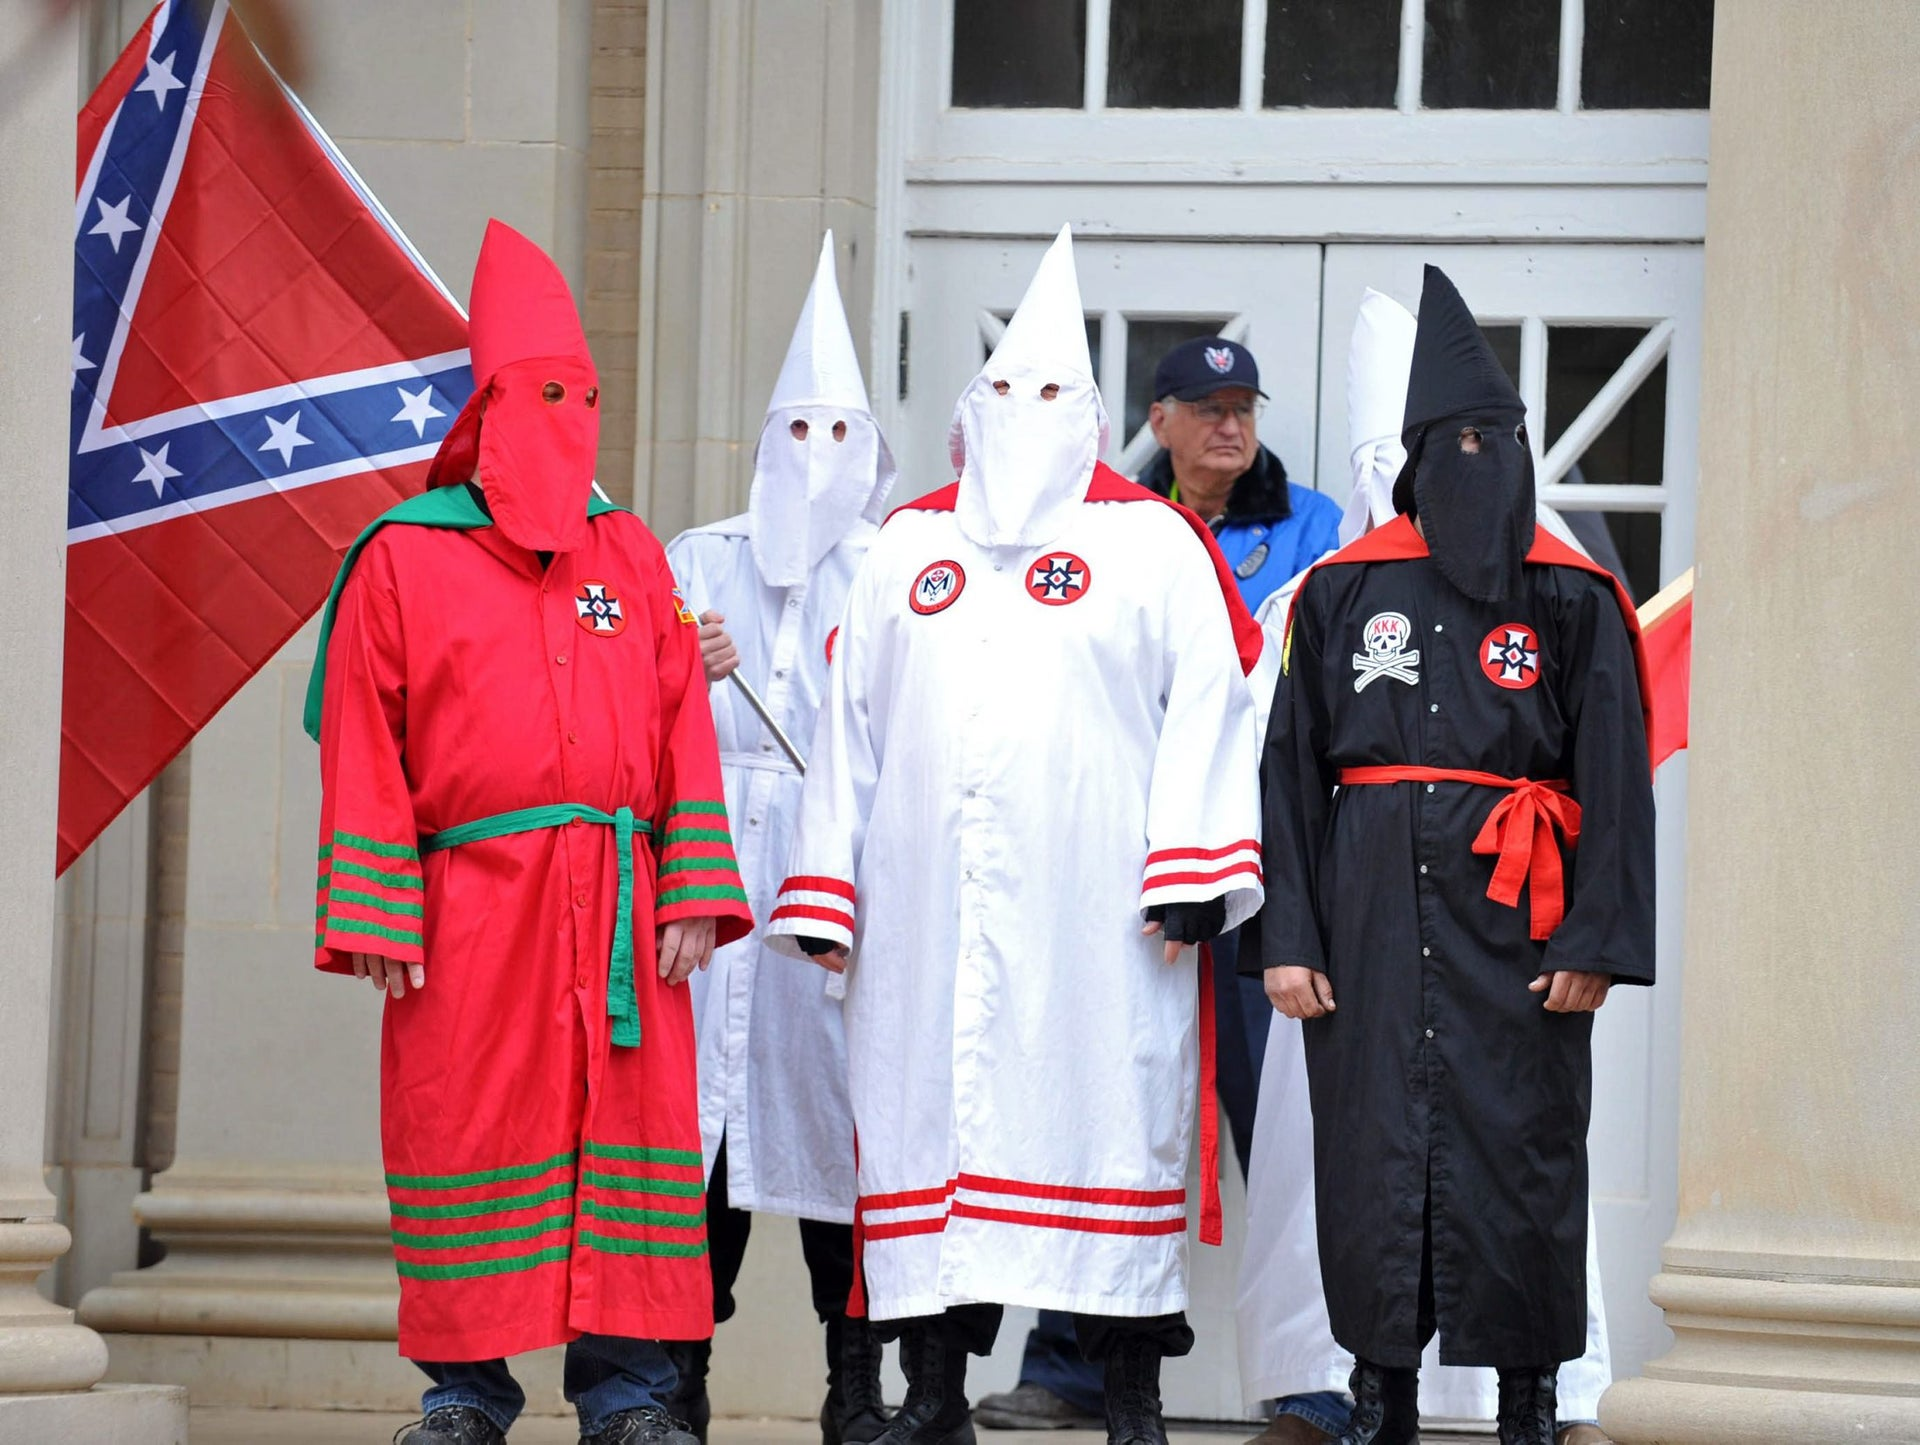 Members of the Ku Klux Klan protest on the steps of Fulton Chapel at the University of Mississippi in Oxford, Miss., Saturday, Nov. 21, 2009.